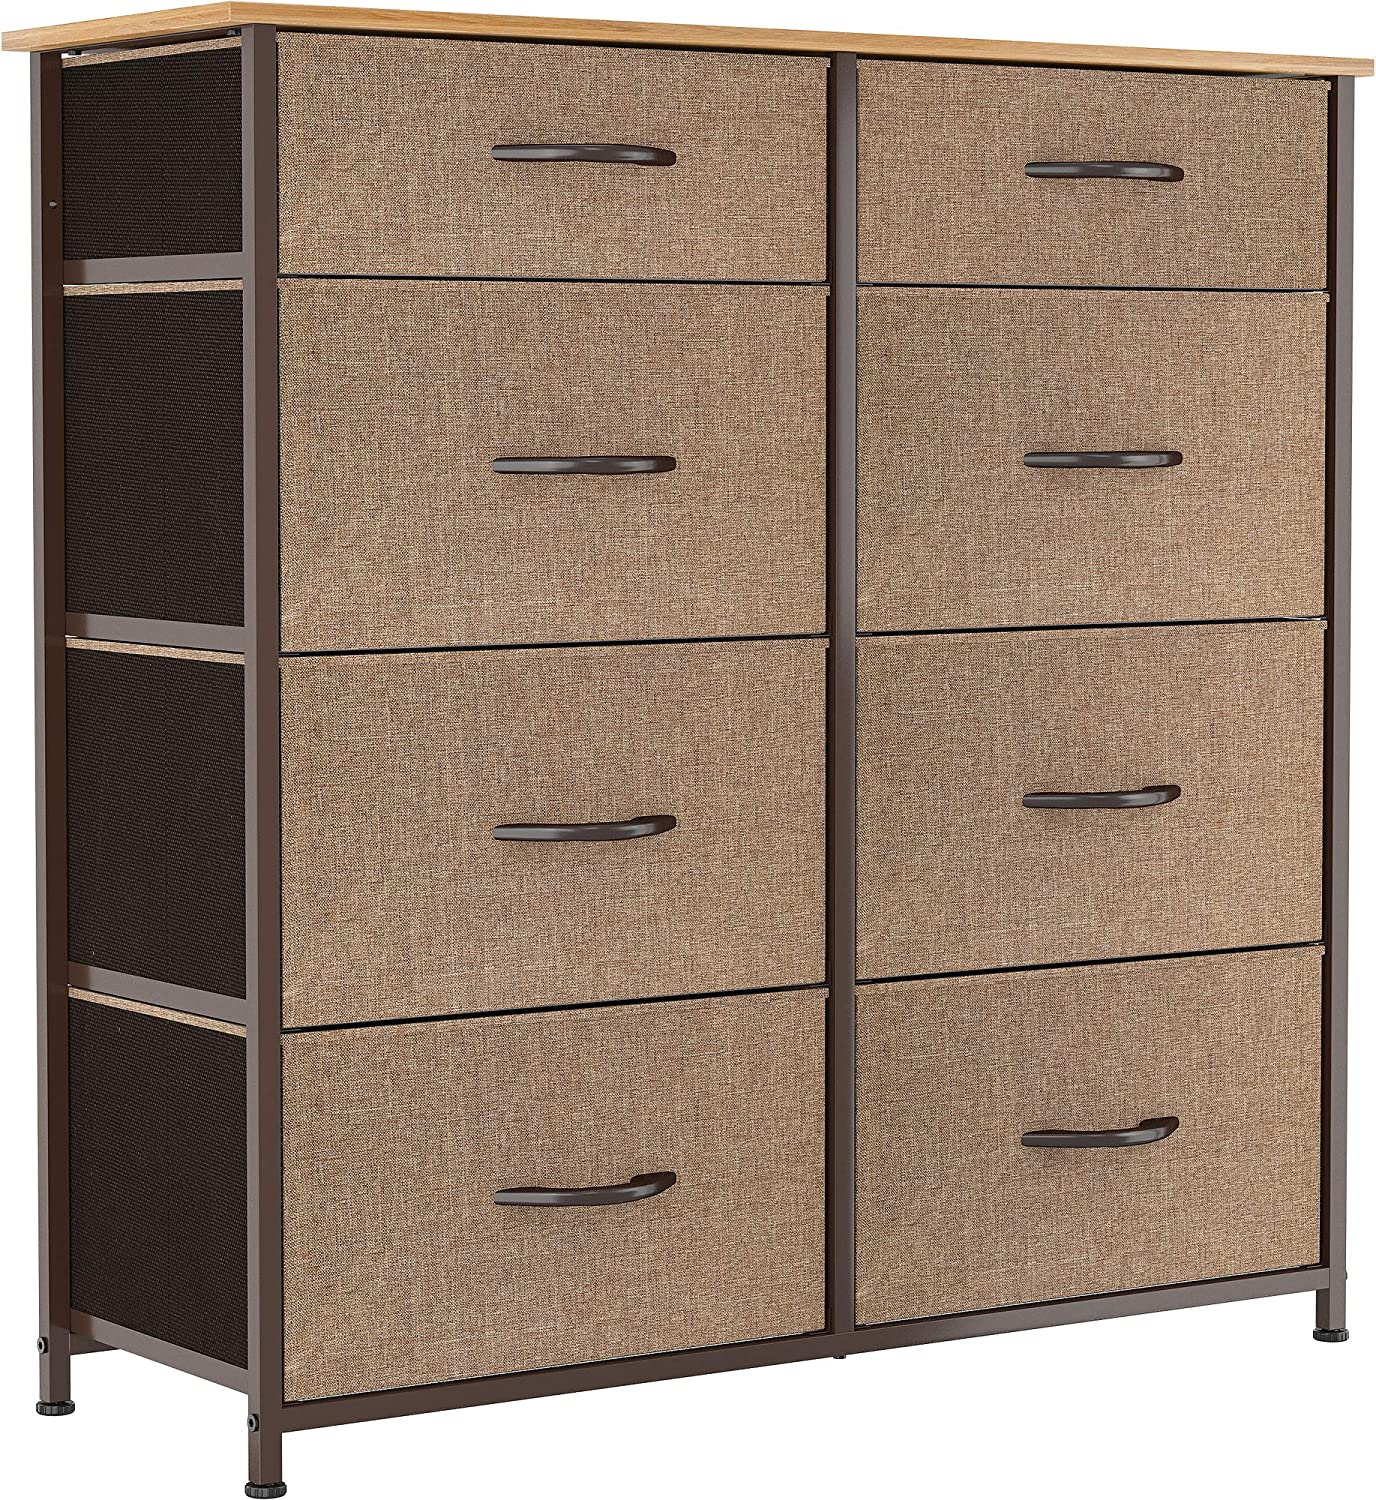 YITAHOME Tall Dresser Max 67% OFF with 8 Drawers Fashionable Furniture T Fabric Storage